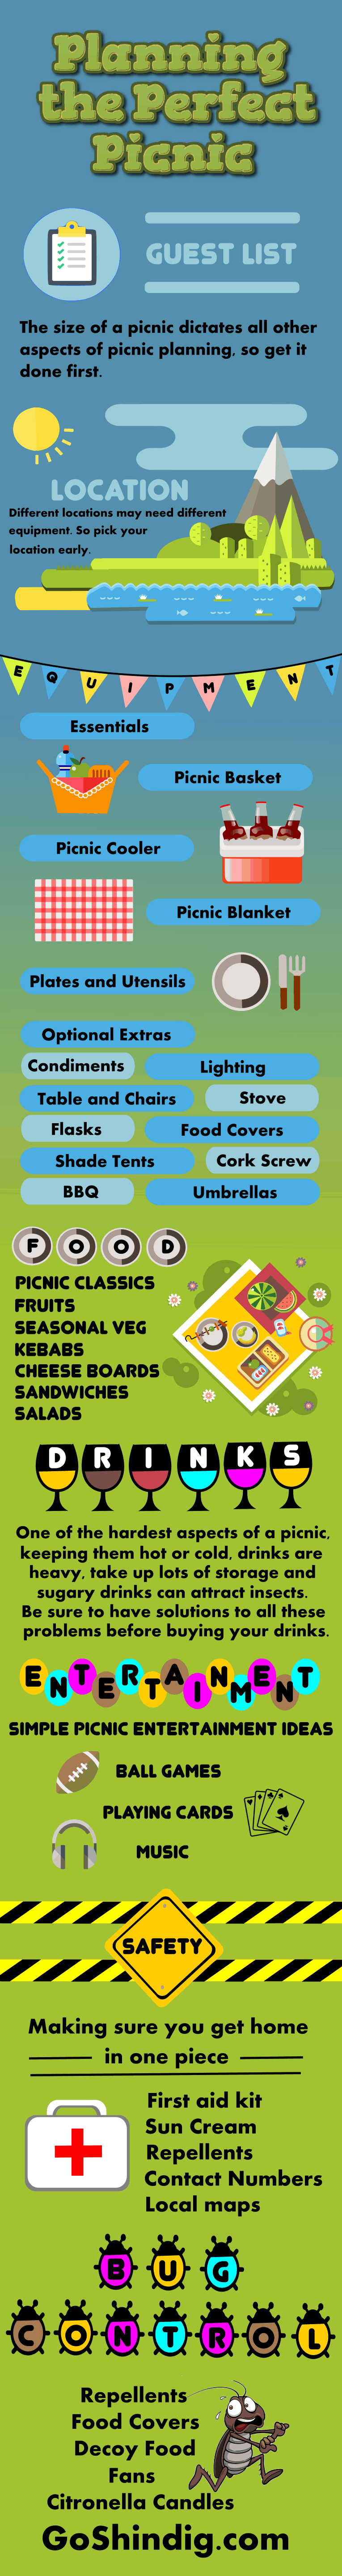 Picnic Planning Infographic